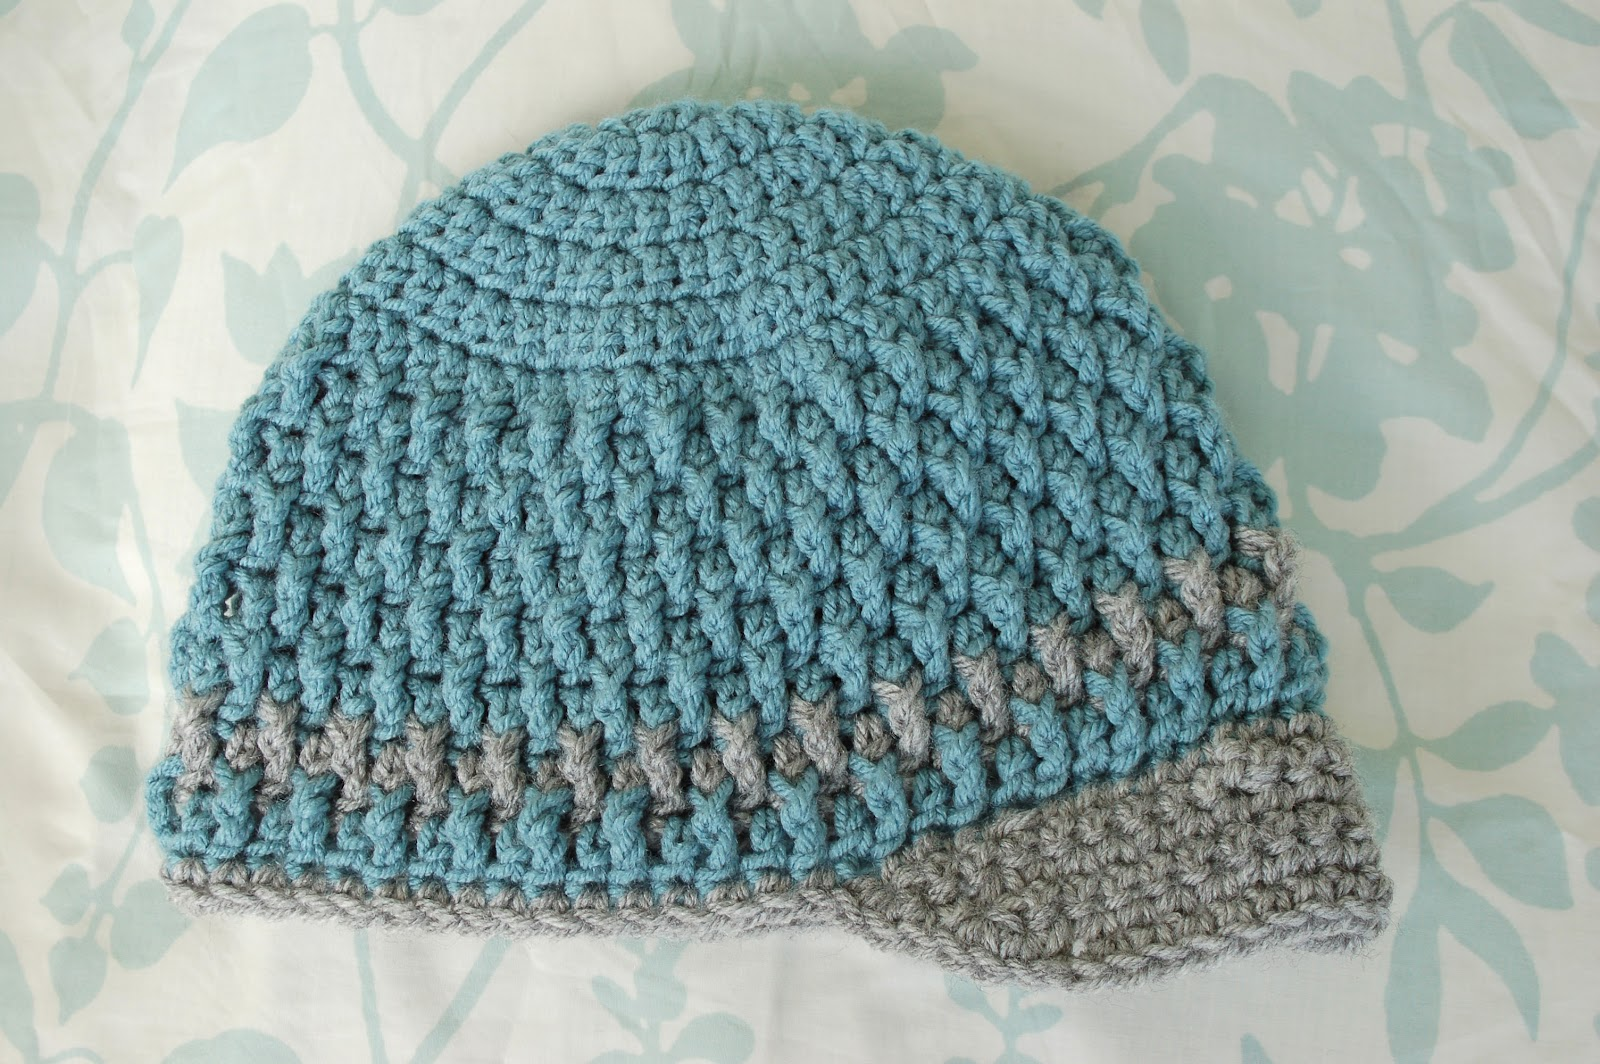 Free Crochet Pattern For A Newborn Hat : Alli Crafts: Free Pattern: Deeply Textured Hat - Toddler